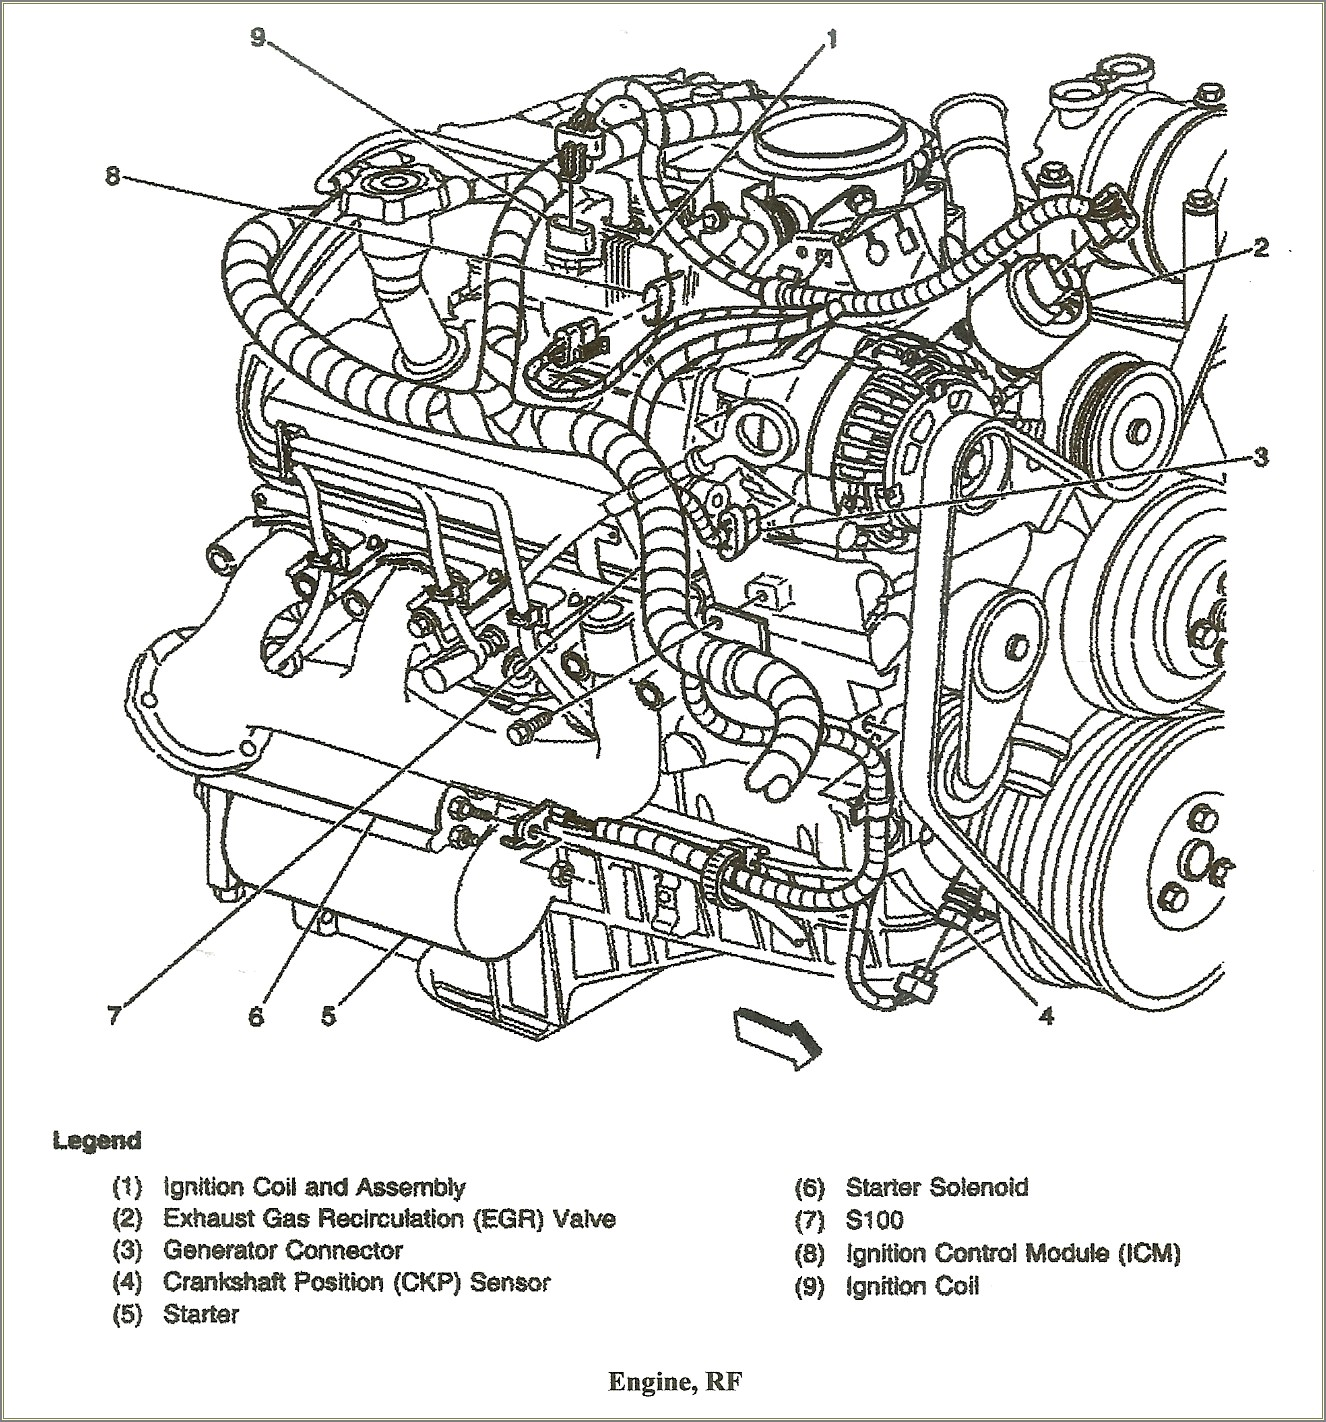 2000 Chevy Blazer Spark Plug Wire Diagram